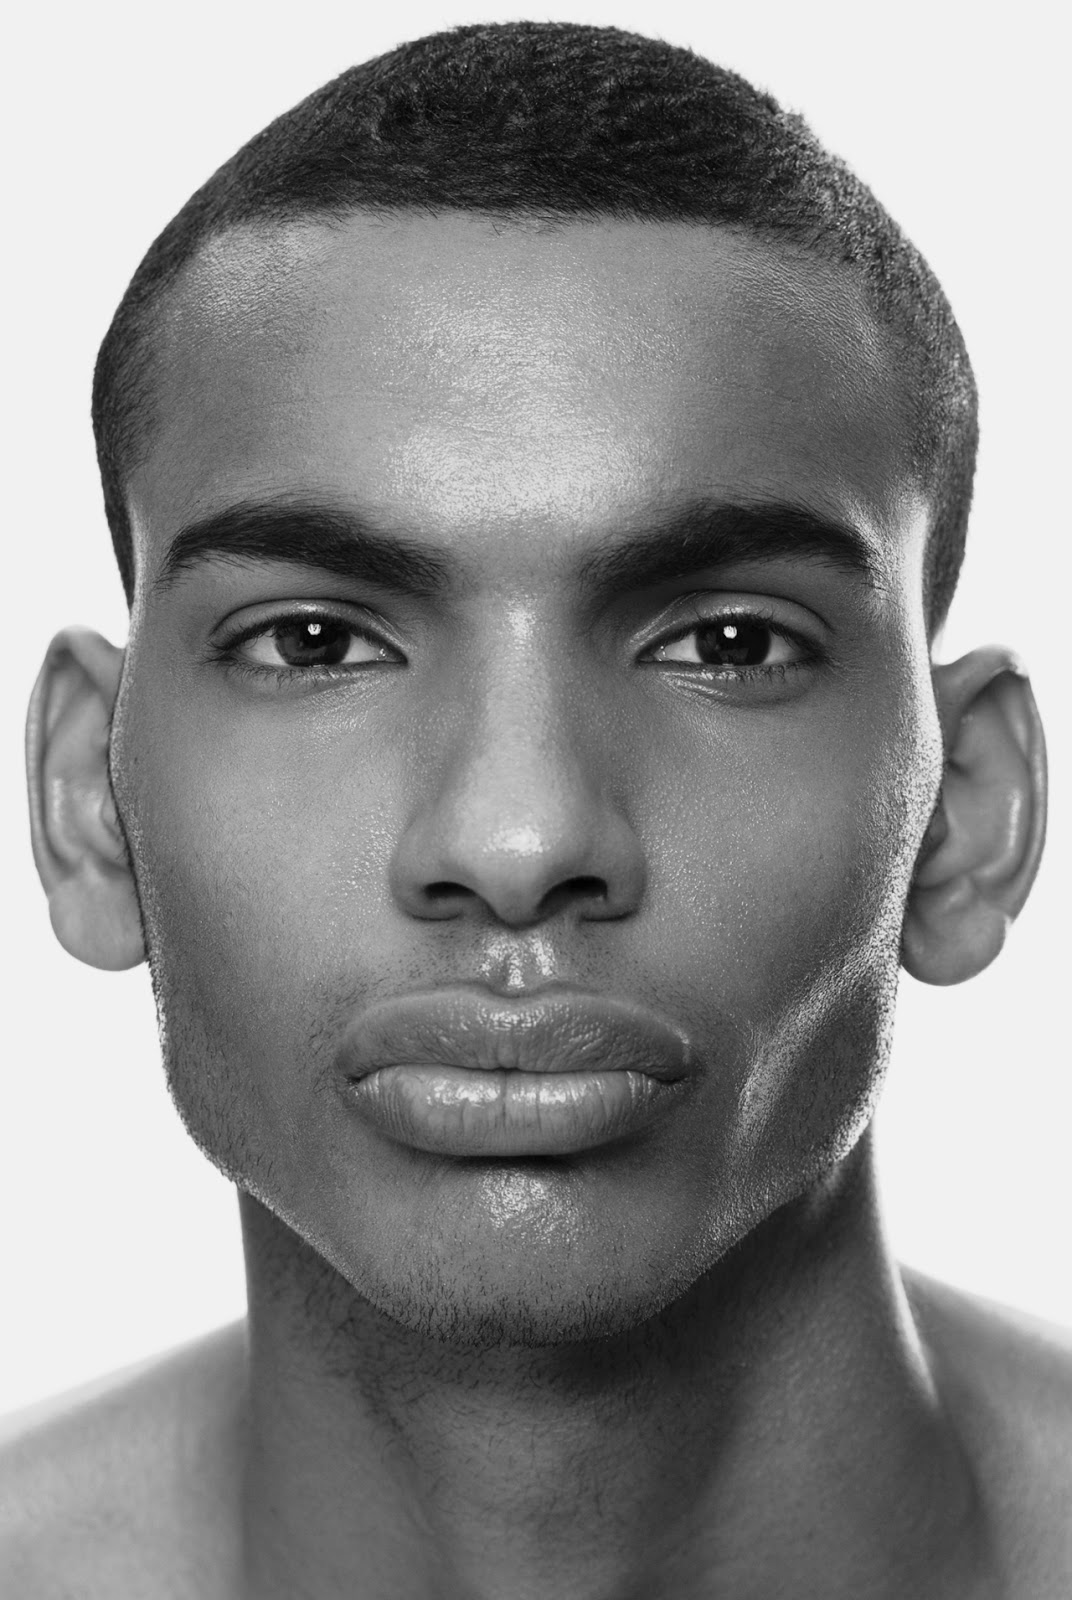 The Perfect Human Face The Ethiopians Somalians And